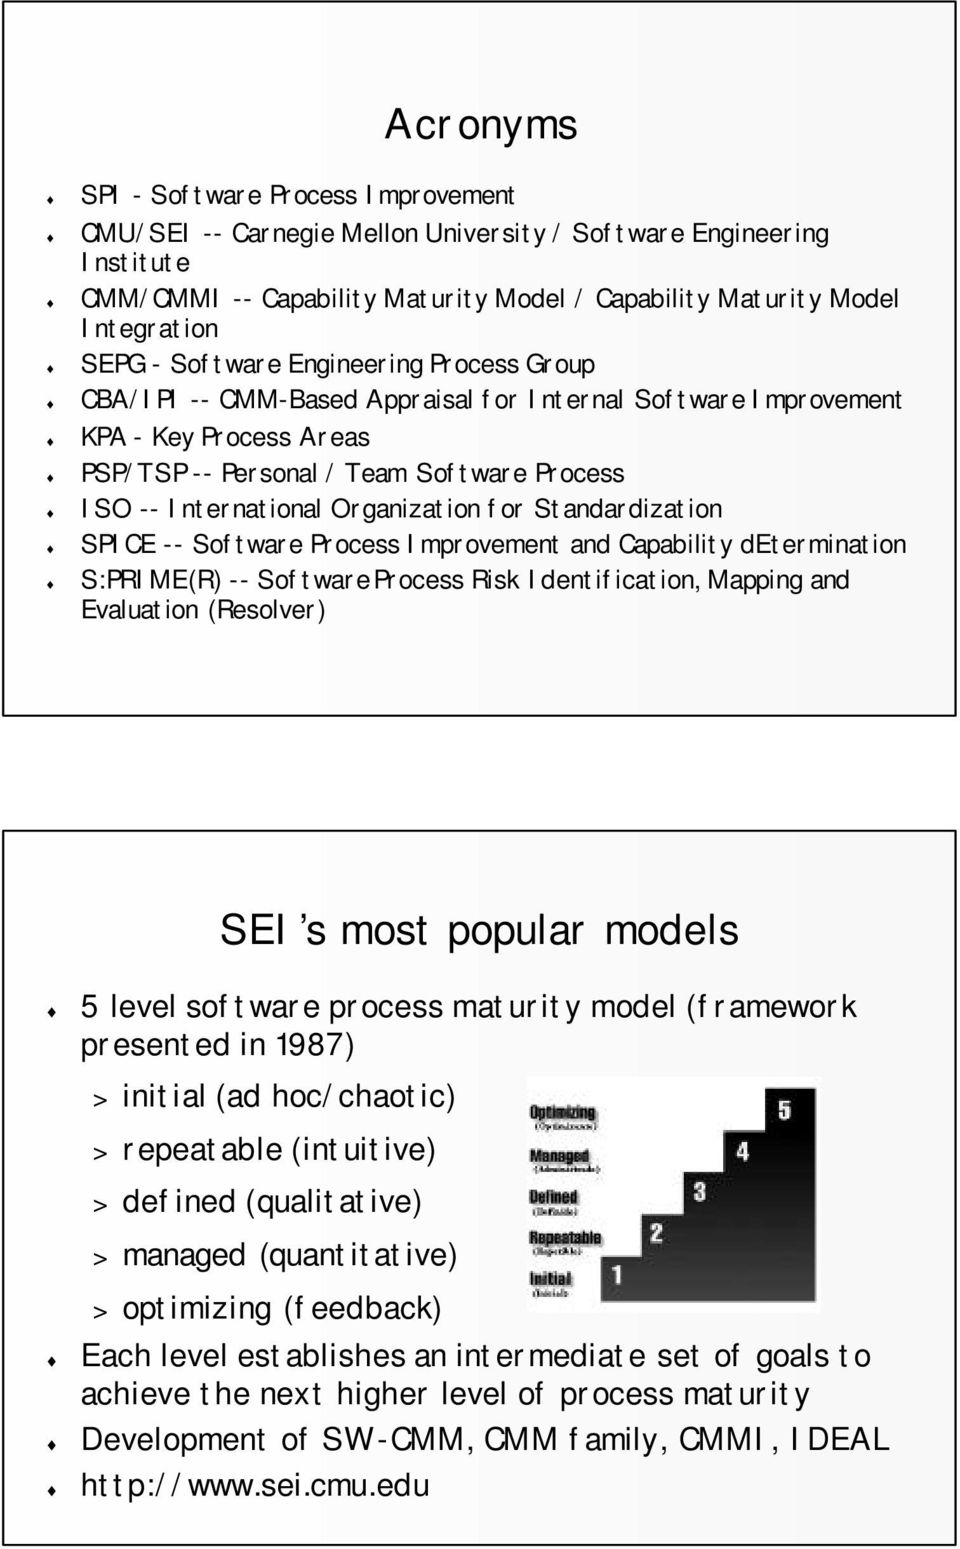 Organization for Standardization SPICE -- Software Process Improvement and Capability determination S:PRIME(R) -- Software Process Risk Identification, Mapping and Evaluation (Resolver) SEI s most